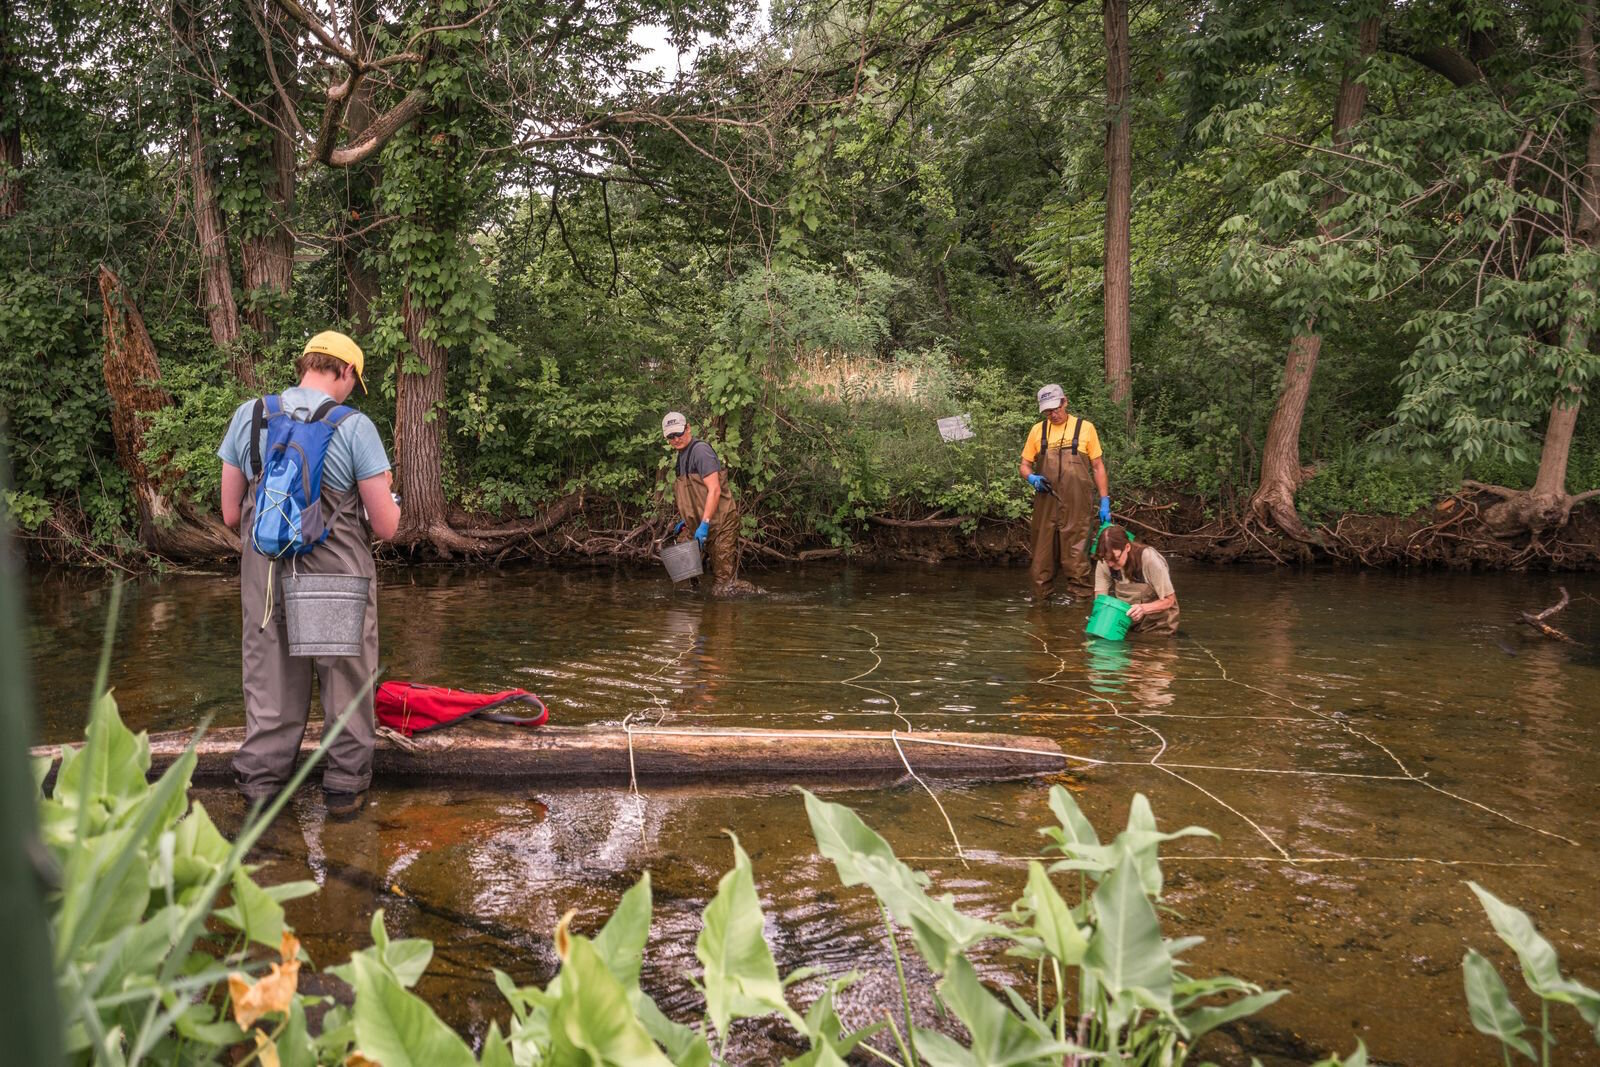 Researchers were excited to find the rare snuffbox mussel in Portage Creek as they researched wildlife as part of the development of The Mill at Vicksburg.